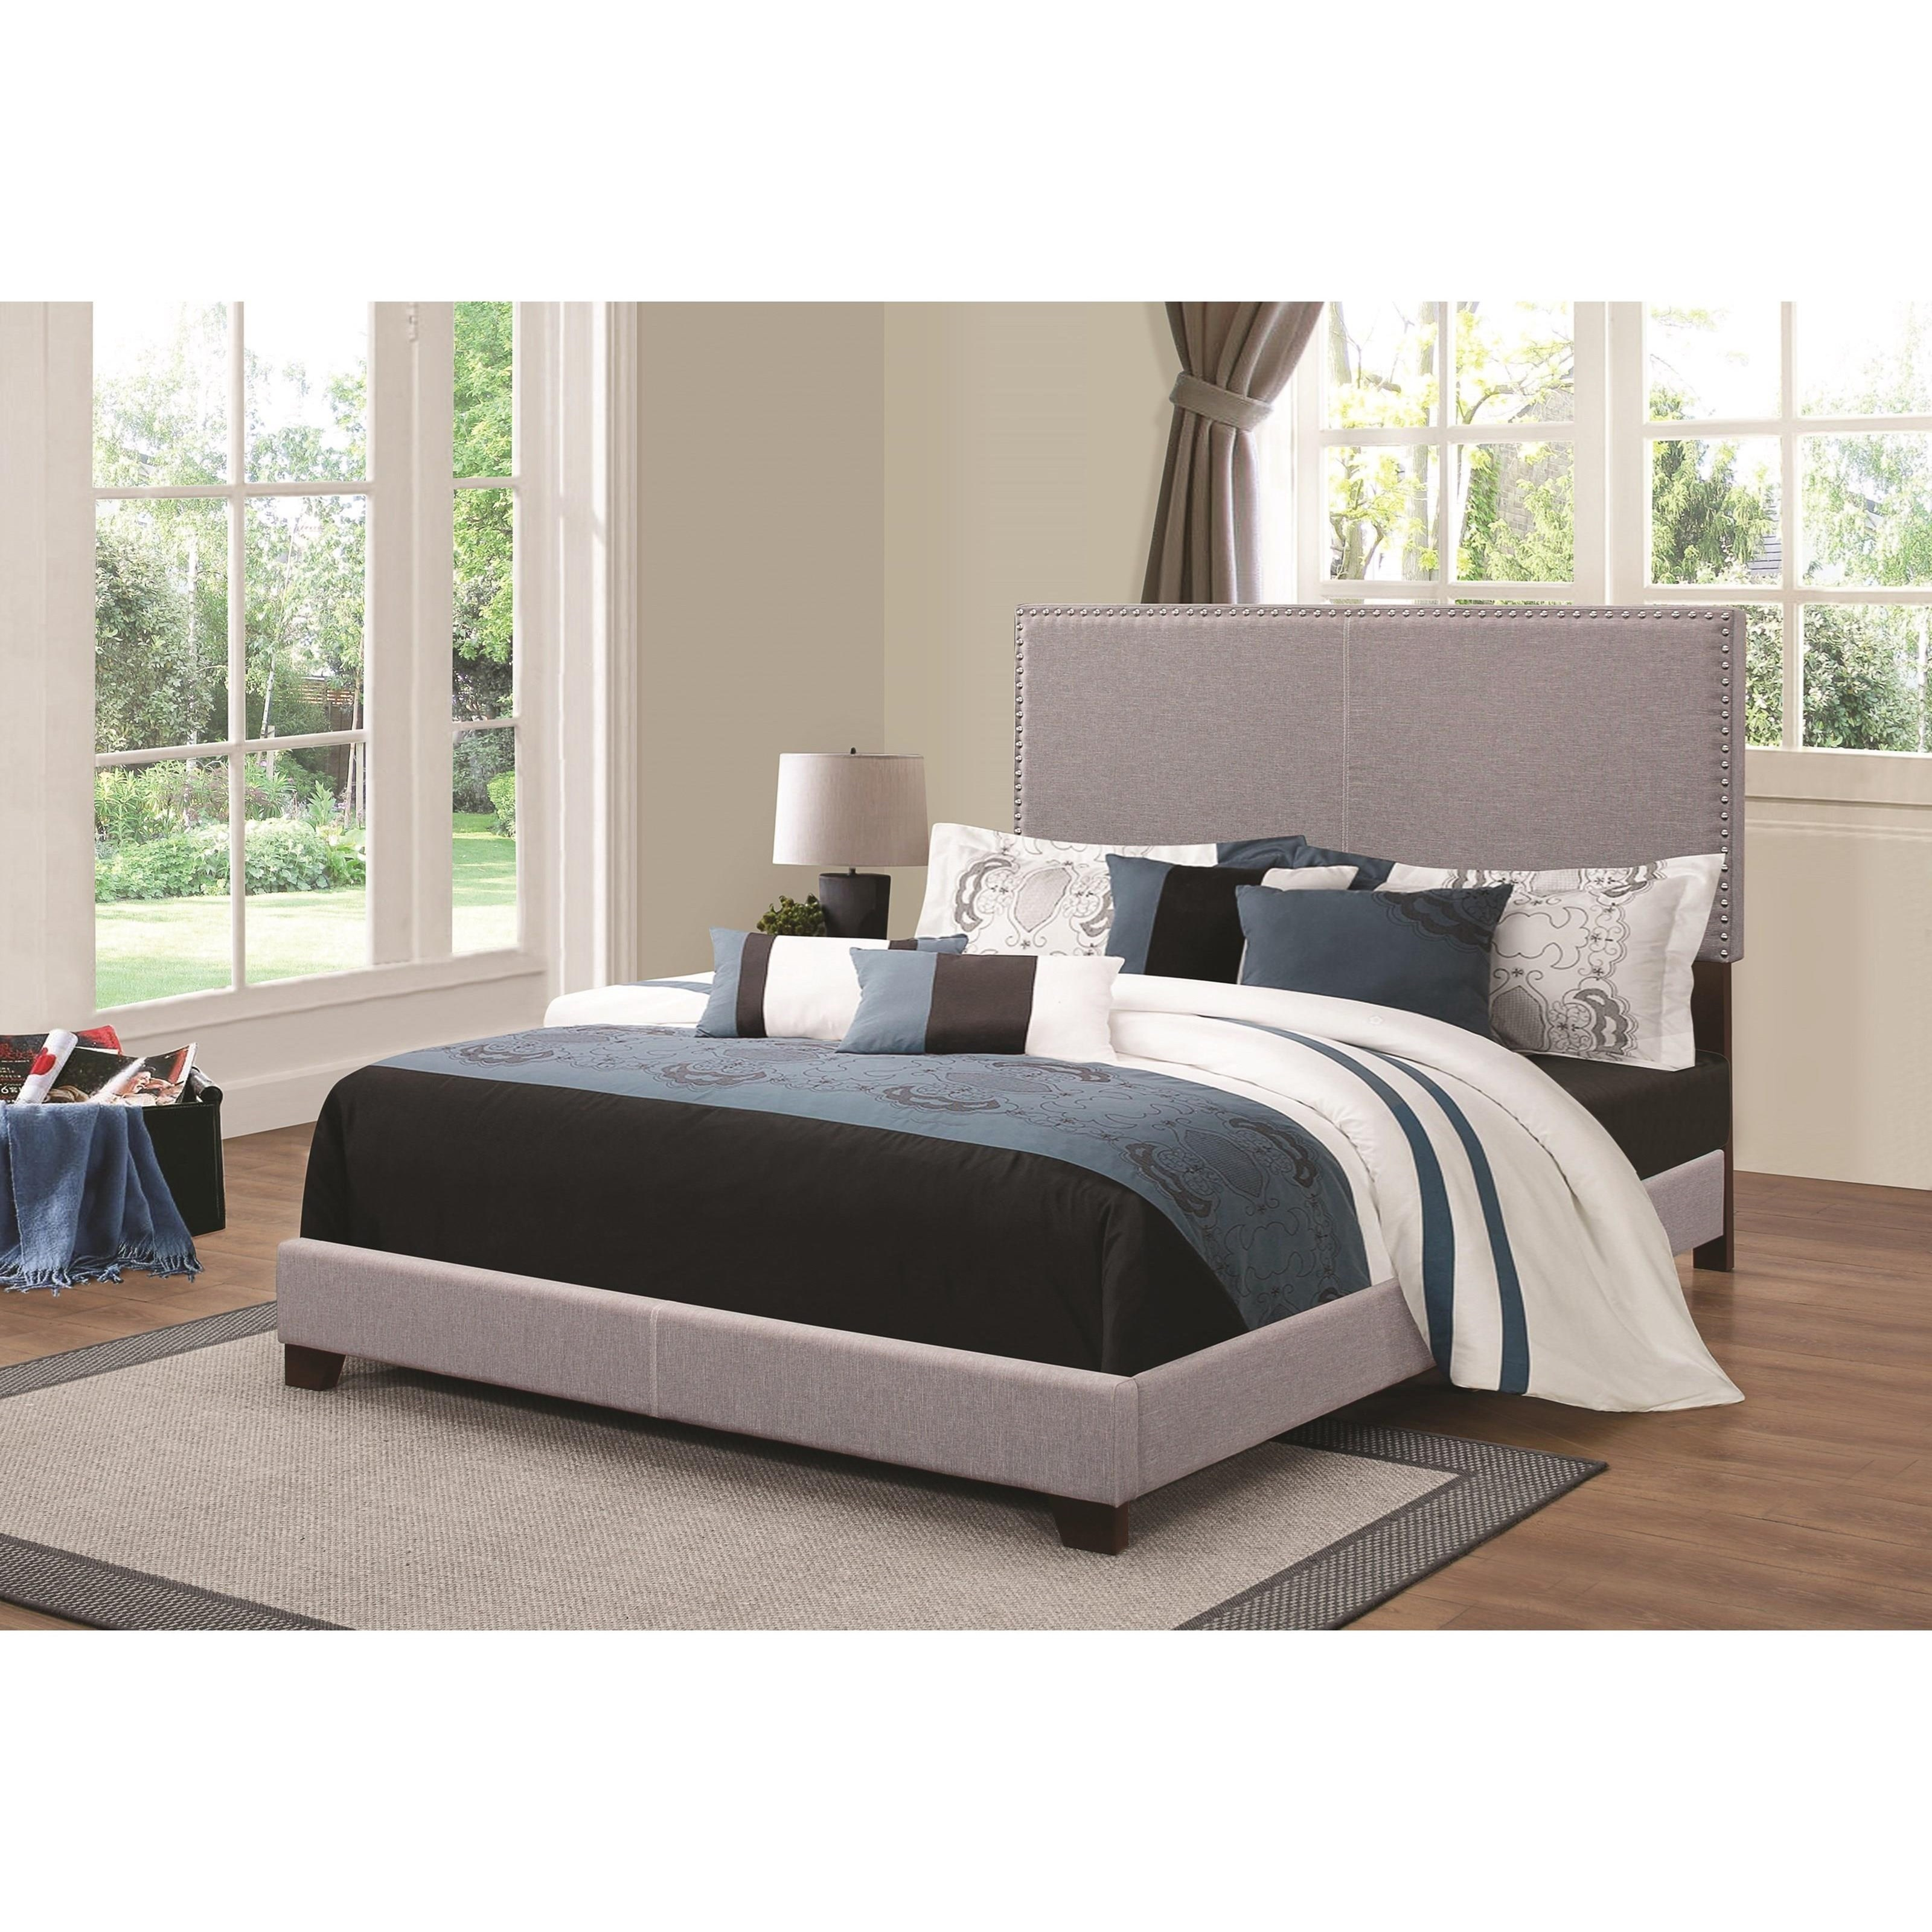 value city beds coaster upholstered beds upholstered bed with 13708